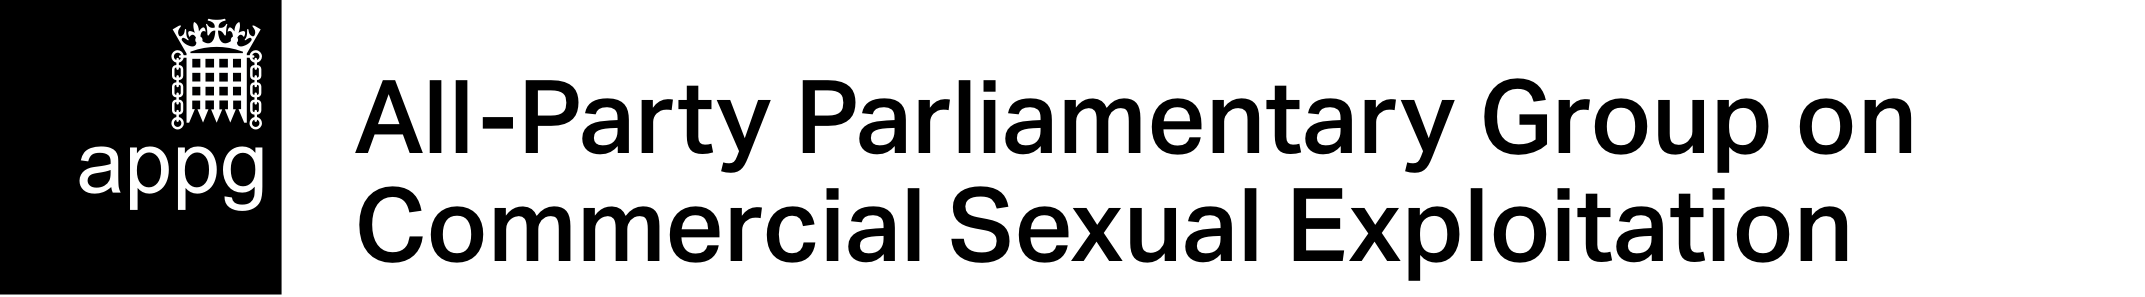 All-Party Parliamentary Group on Prostitution and the Global Sex Trade